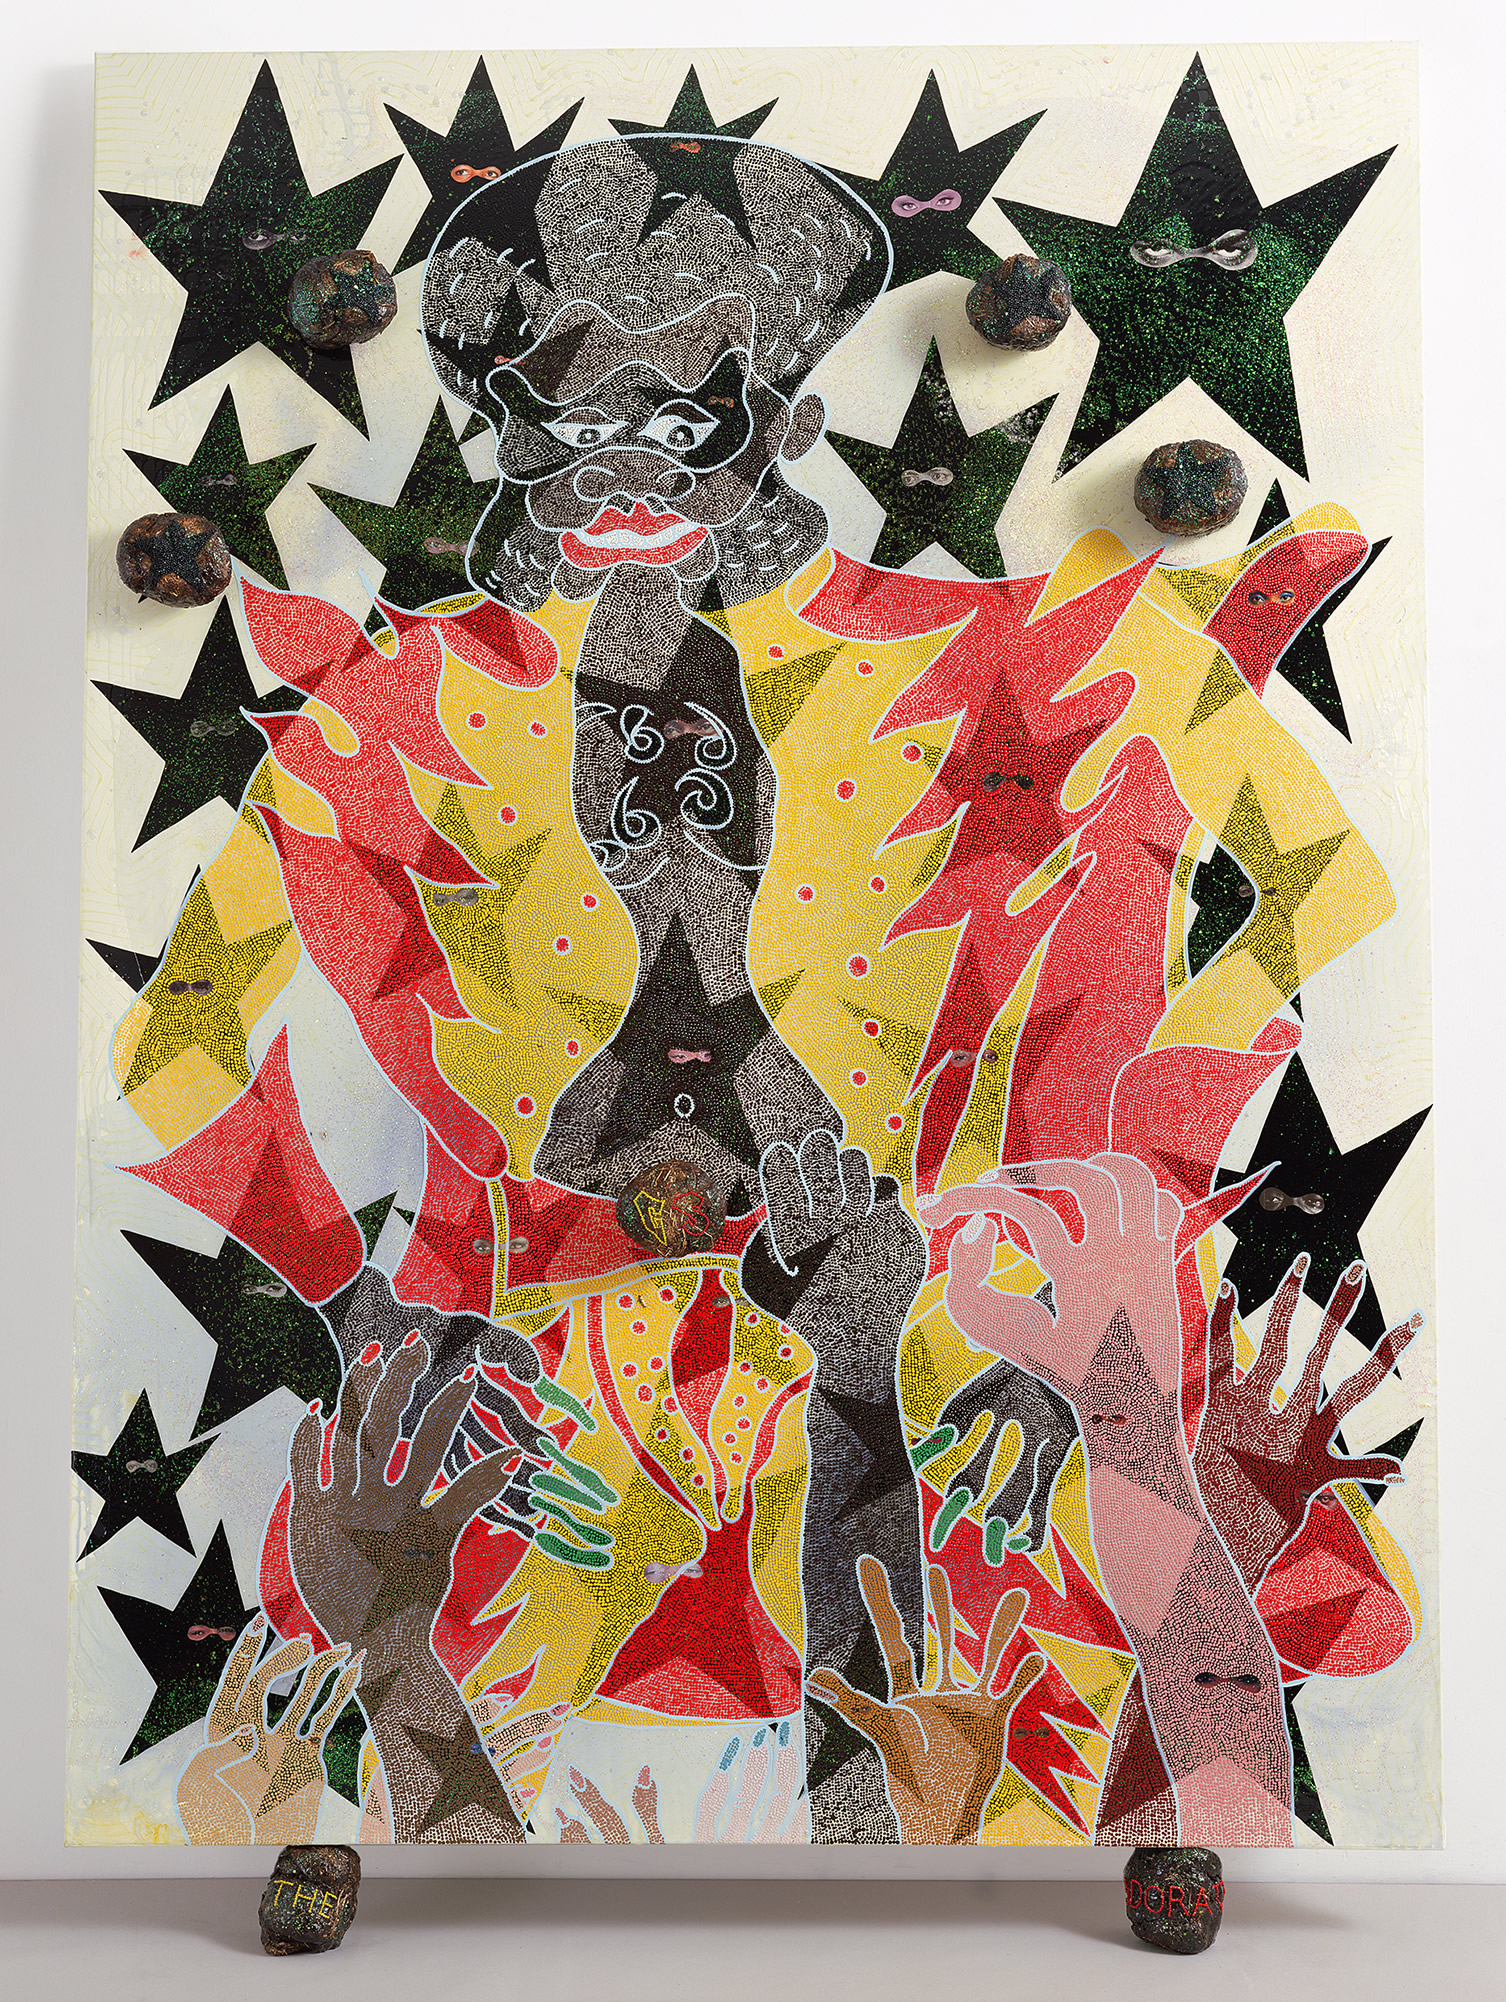 Chris Ofili, The Adoration of Captain Shit and the Legend of the Black Stars (Third Version), 1998.